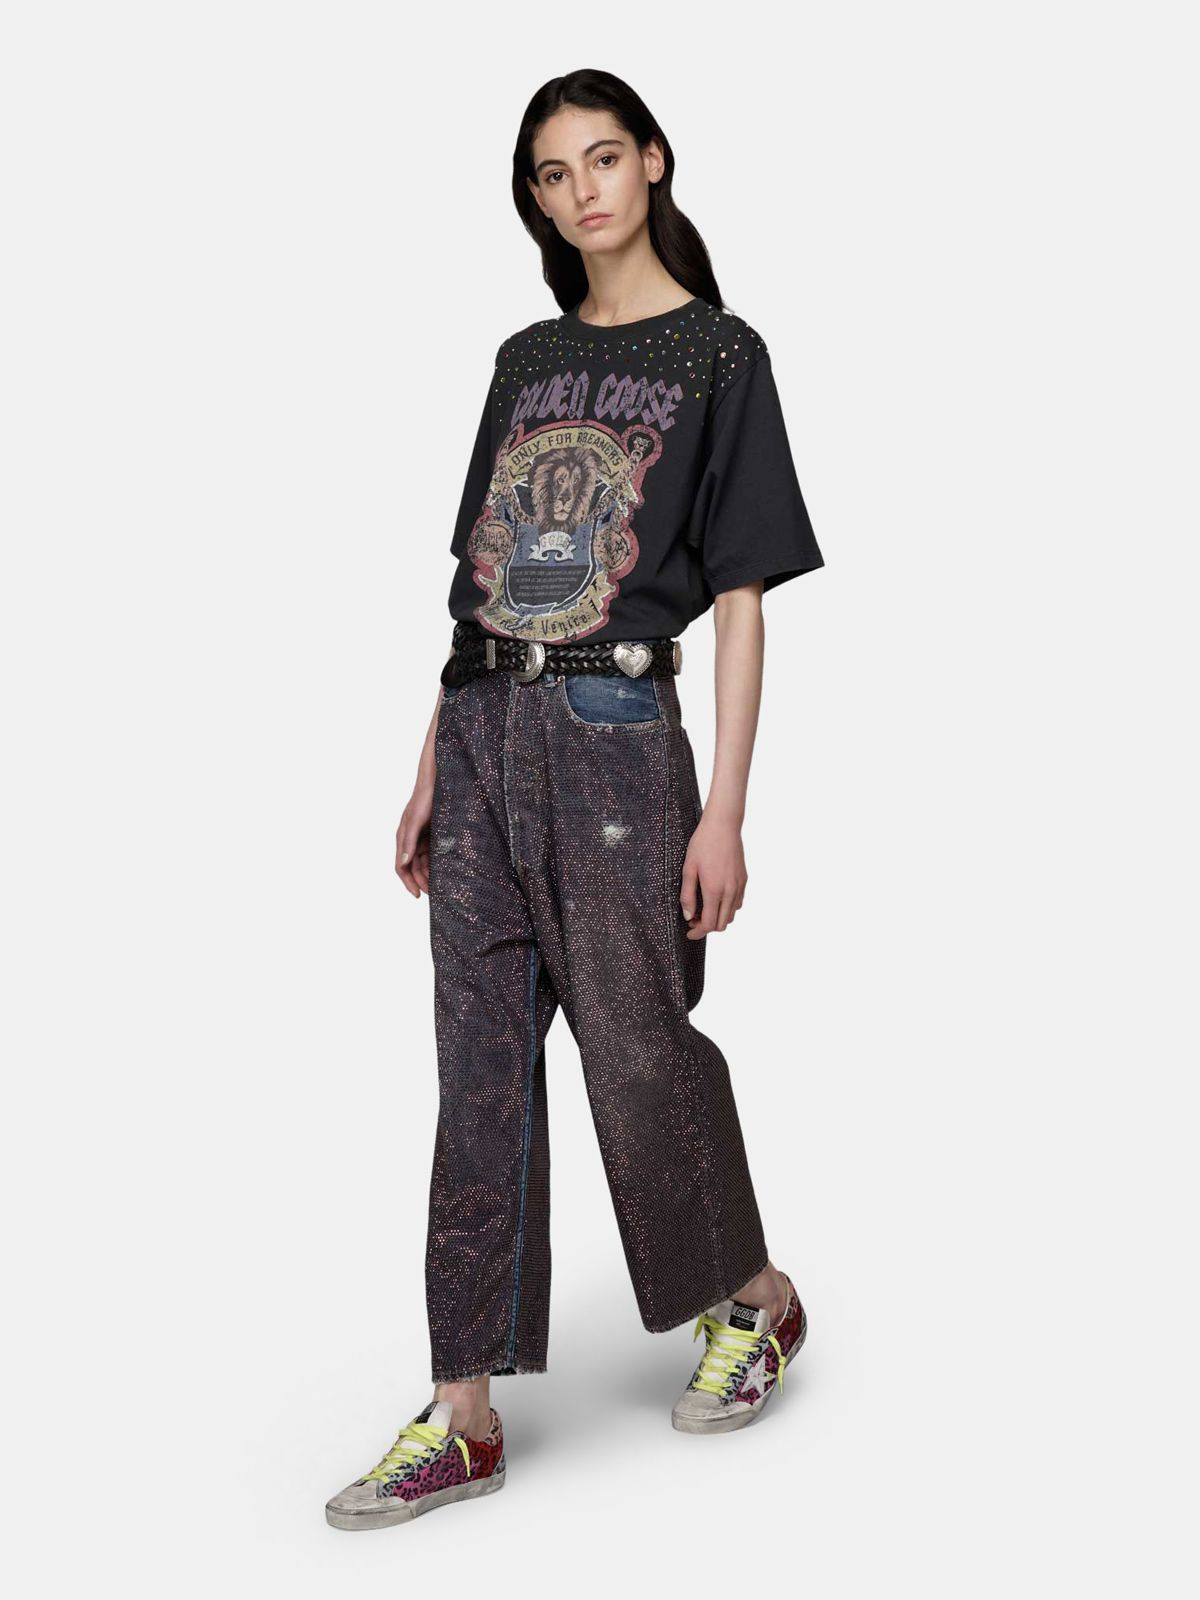 Golden Goose - Black oversize T-shirt with lion print and crystals in